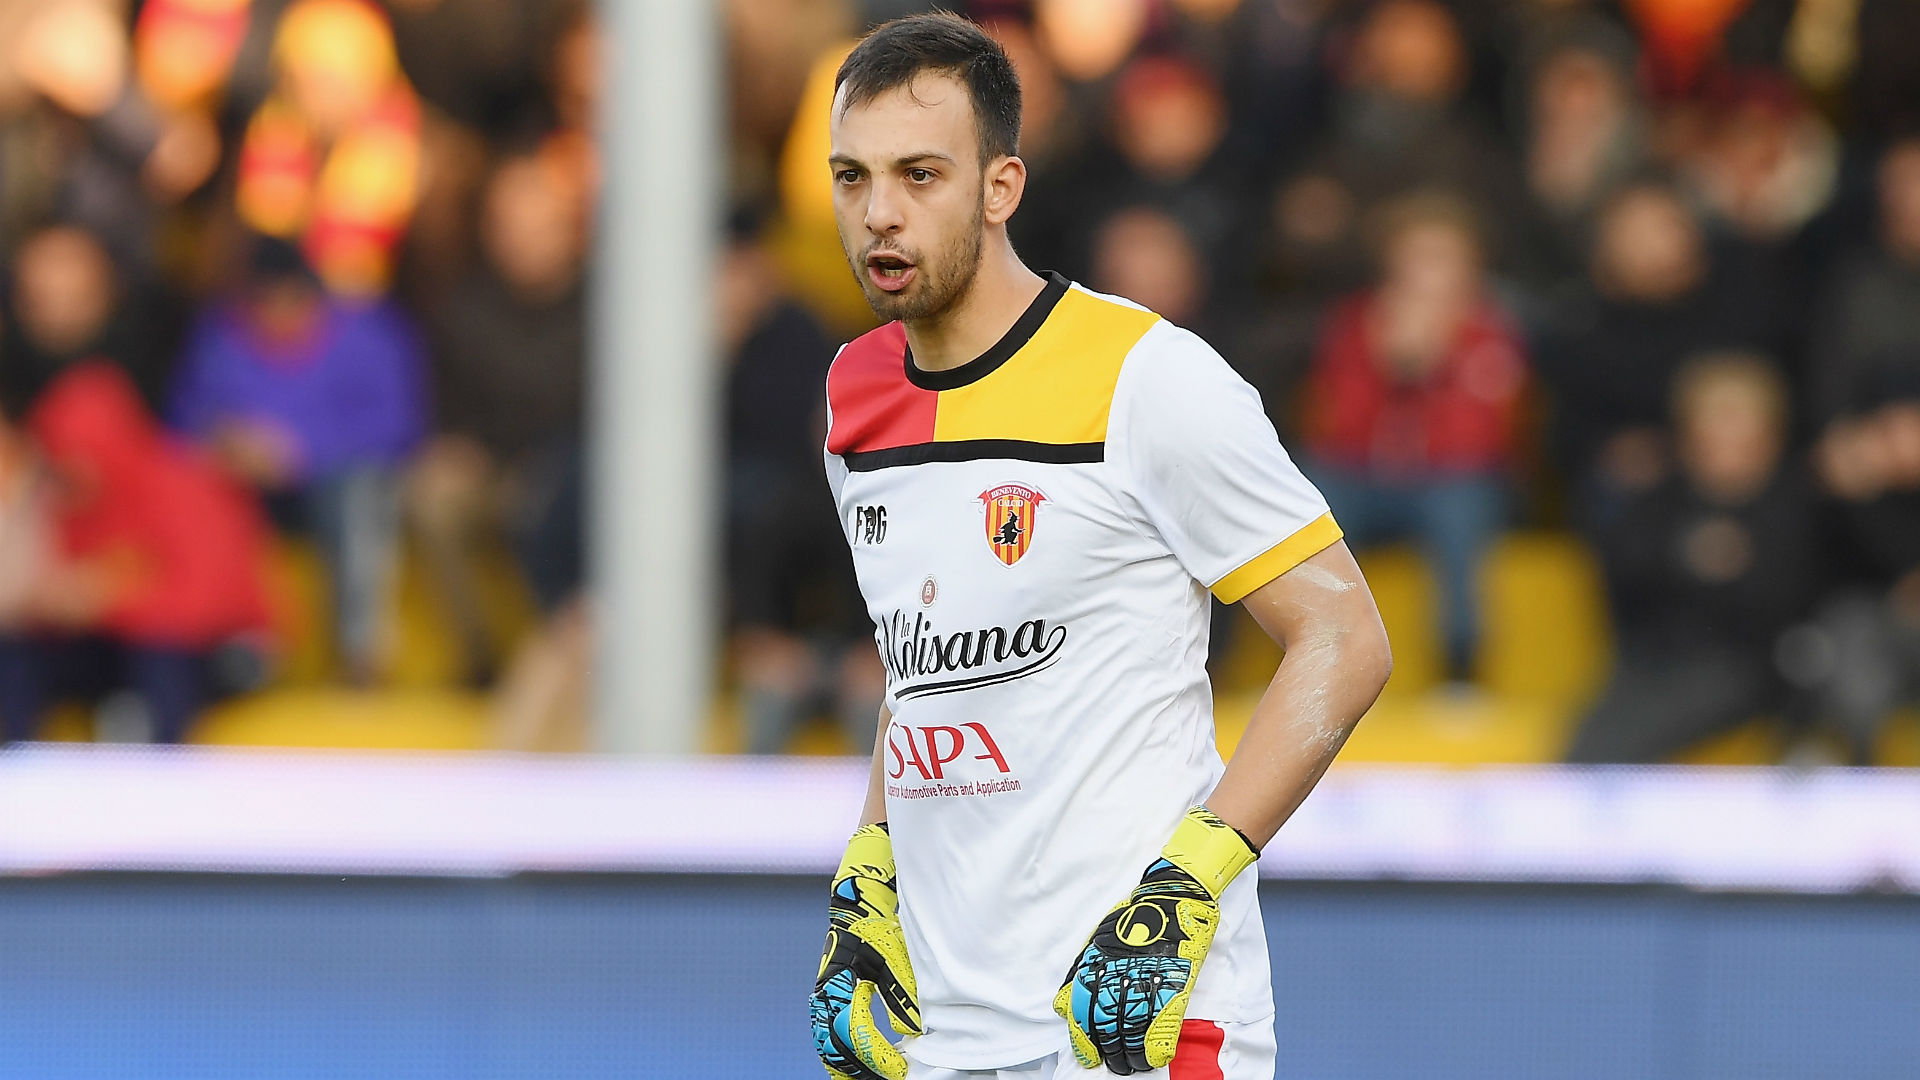 Benevento goalkeeper scores 95th-minute diving header to equalise against AC Milan